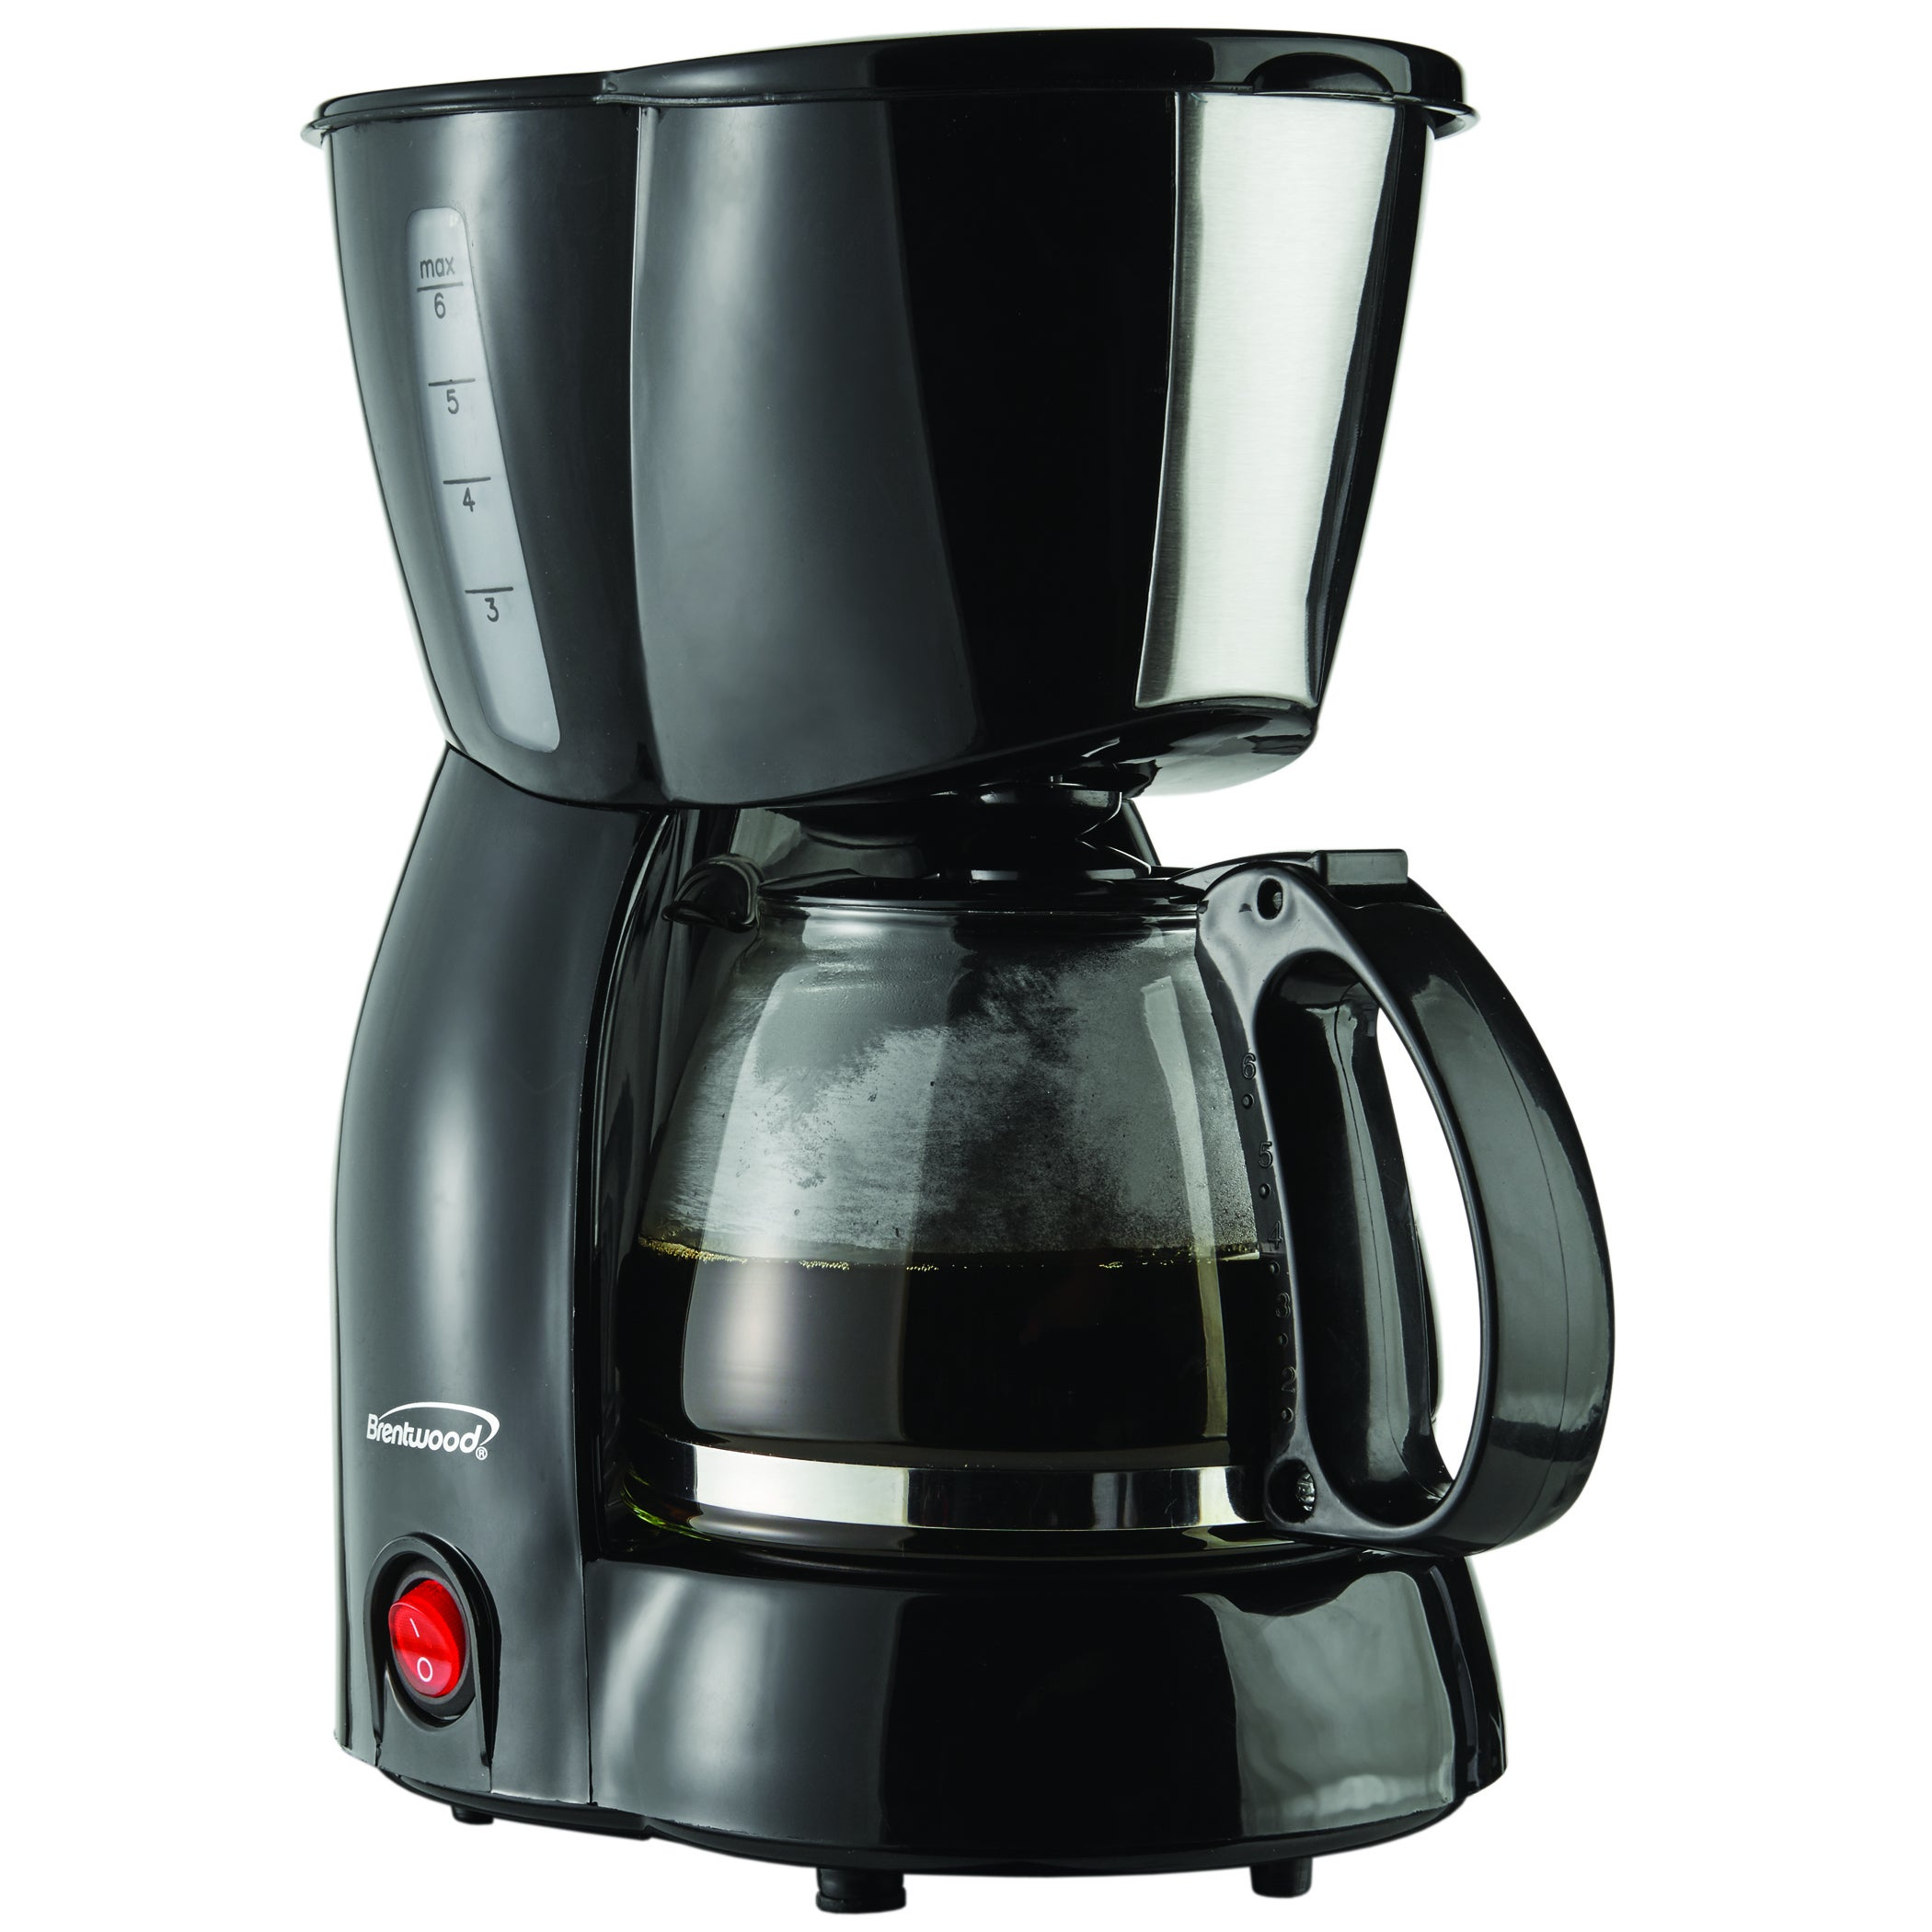 Brentwood TS-213BK Black 4-cup Coffee Maker (Glass)